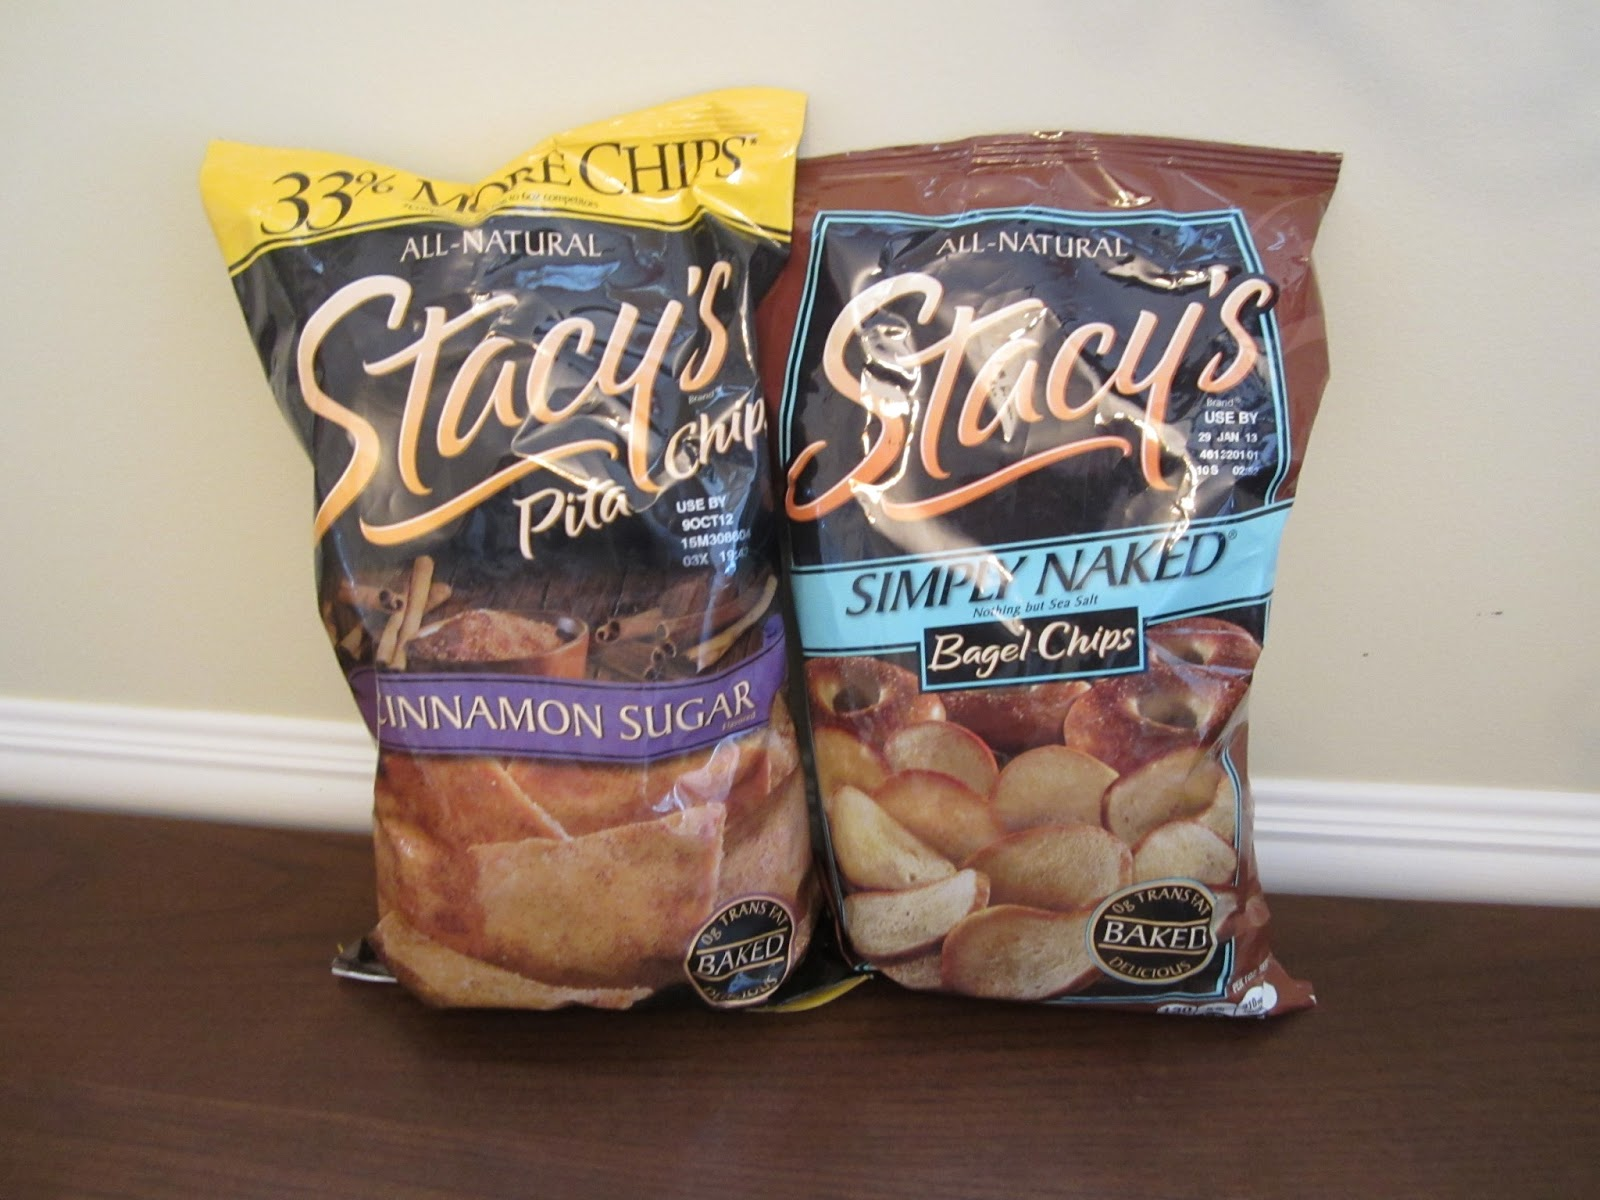 marketing stacys pita chips In addition, stacy's pita chips is rising to the occasion with a donation to step up, an organization that propels girls in under-resourced communities to fulfill their potential.